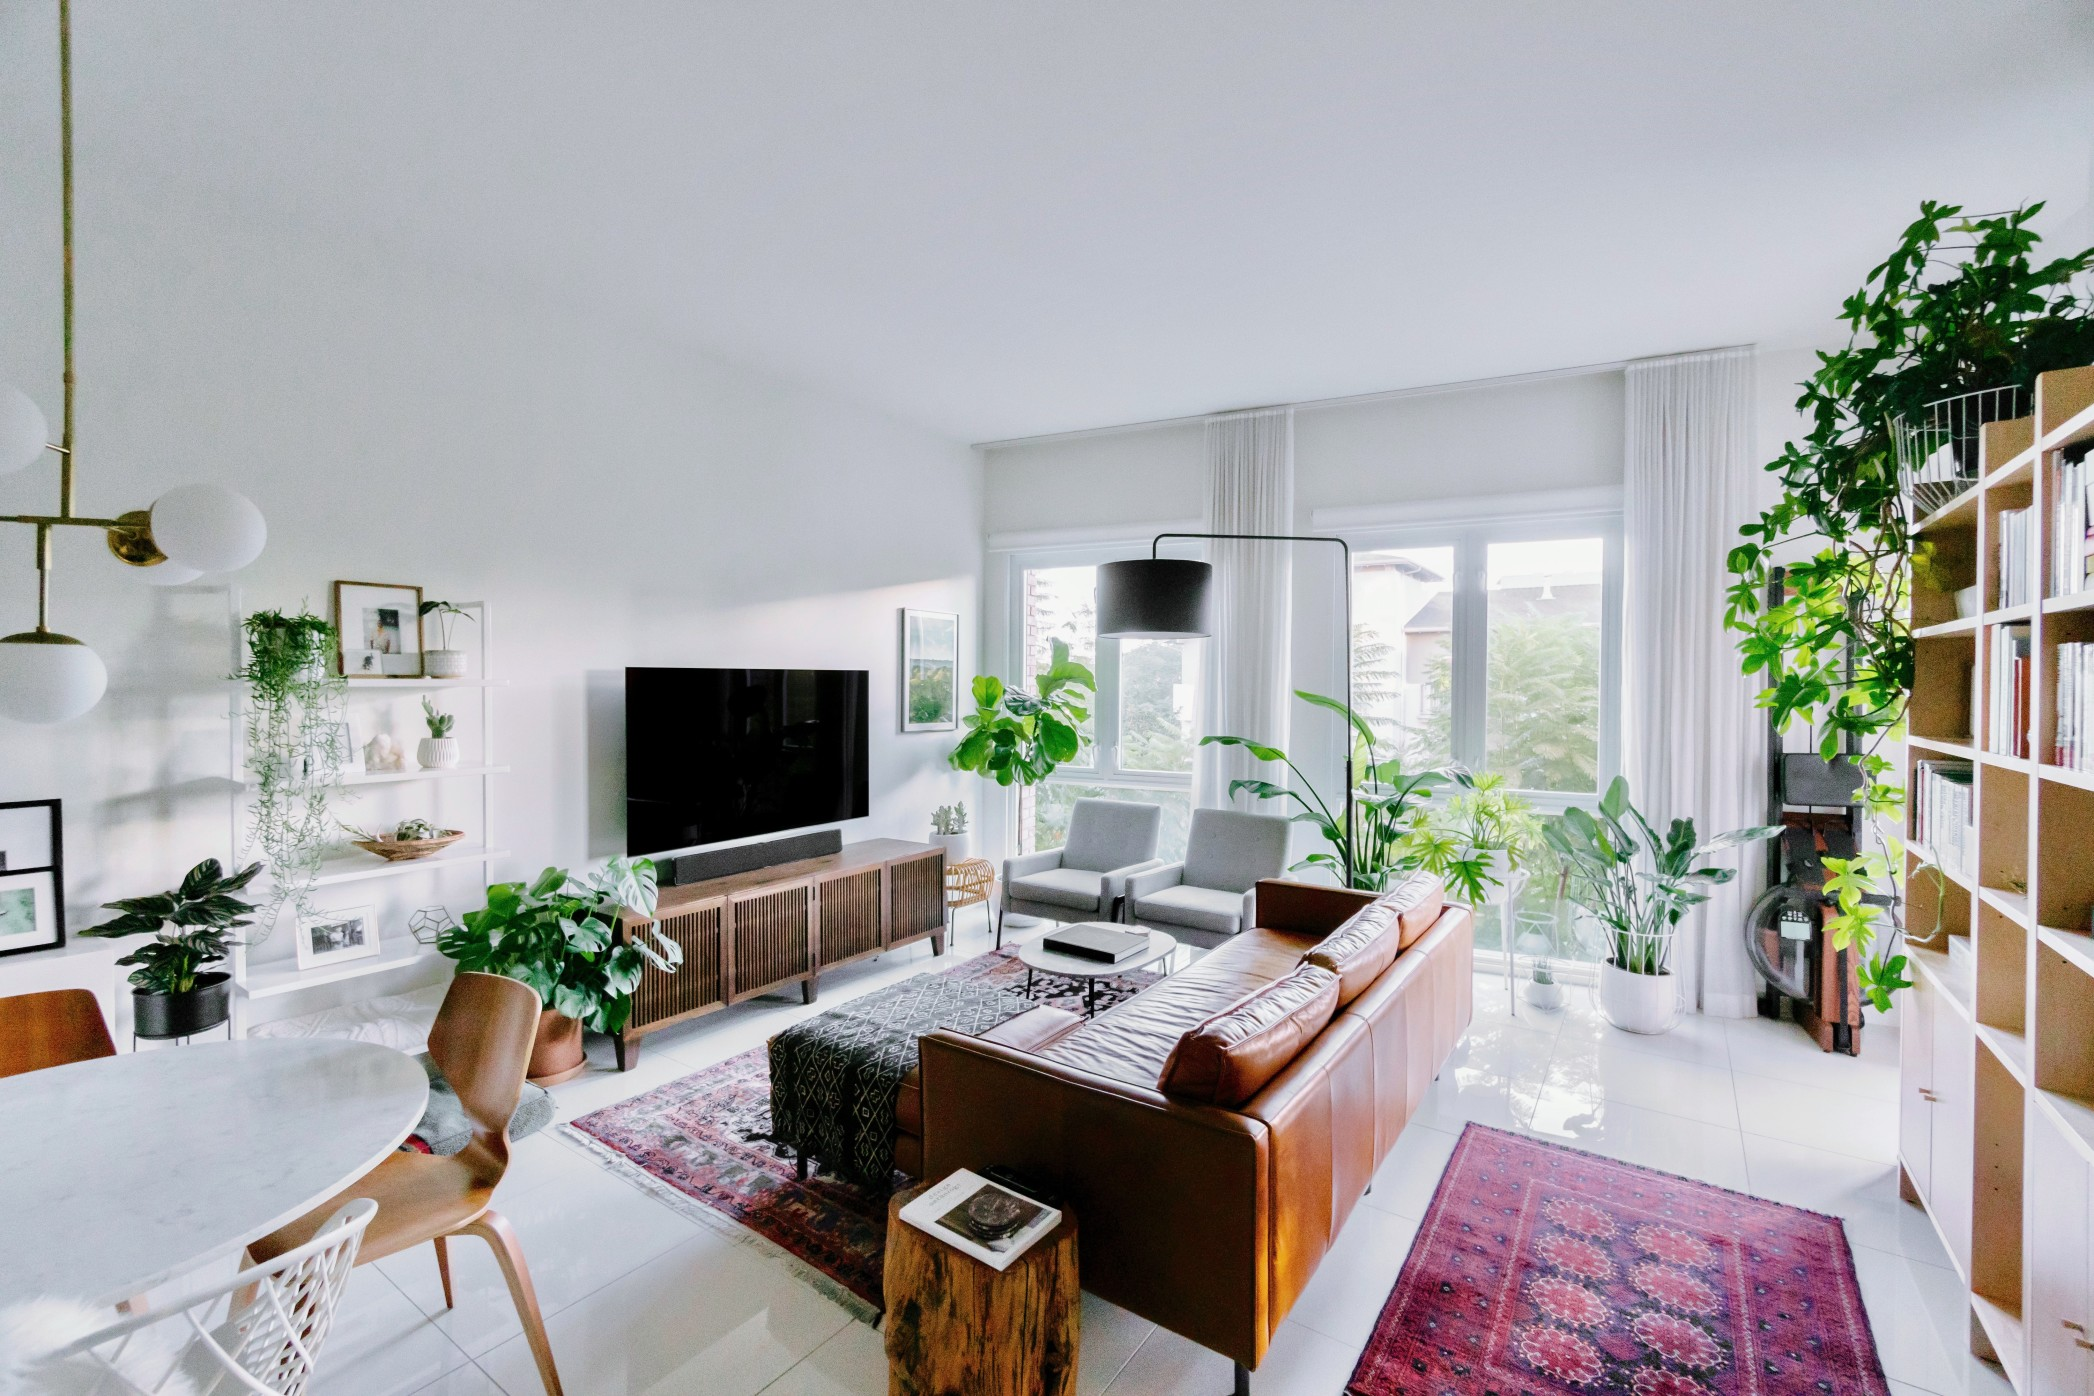 5 Most Popular Sustainable Materials For A Modern Home Interior Design